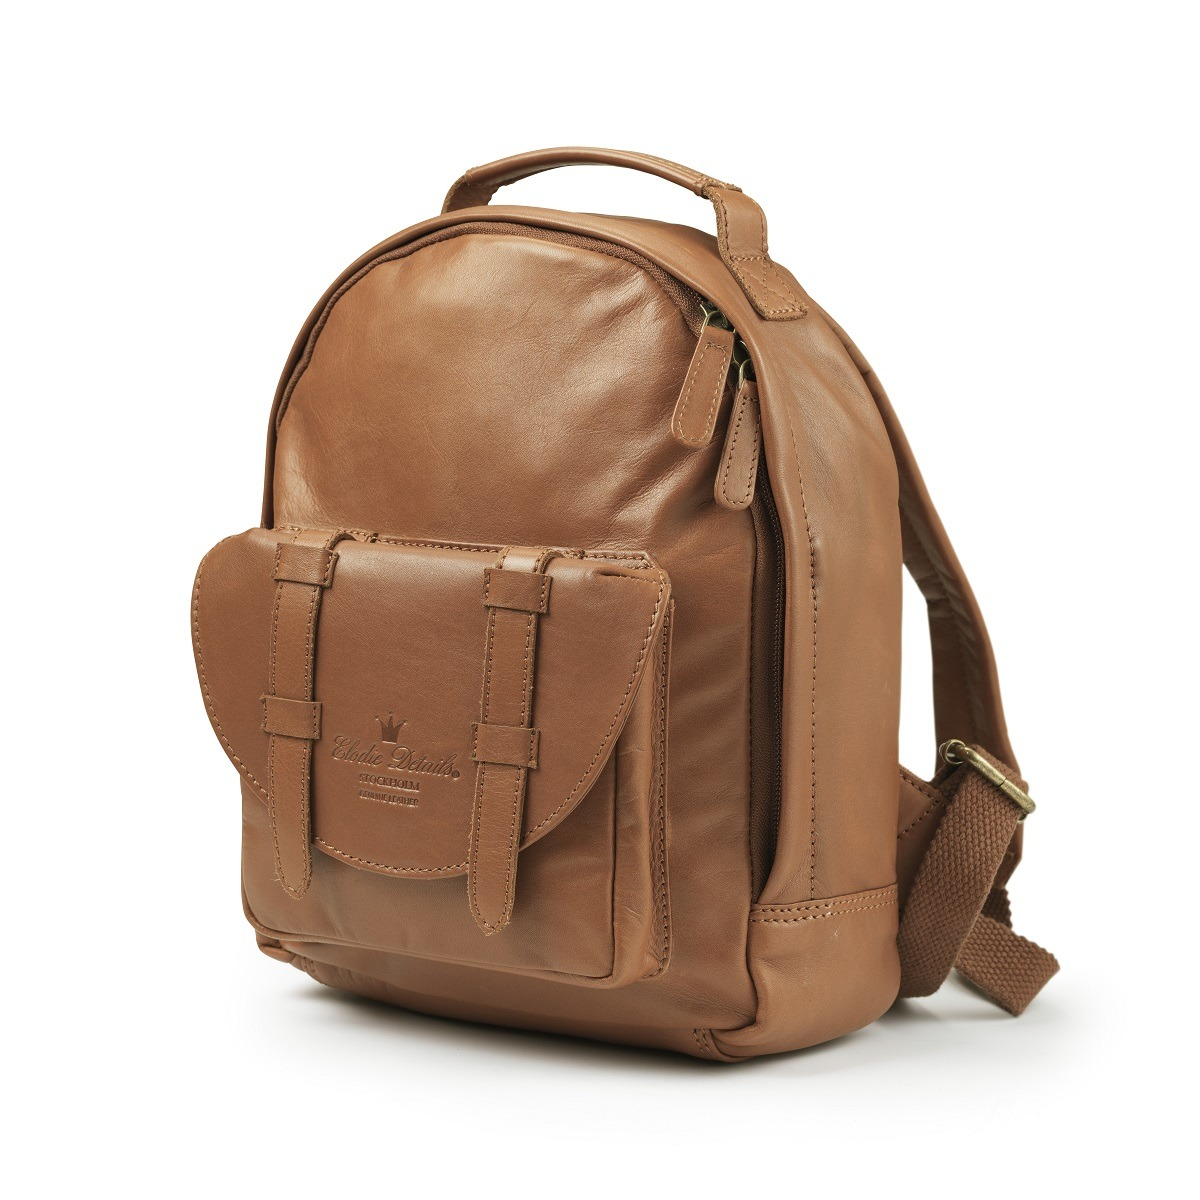 Elodie Details – BackPack MINI – Chestnut Leather